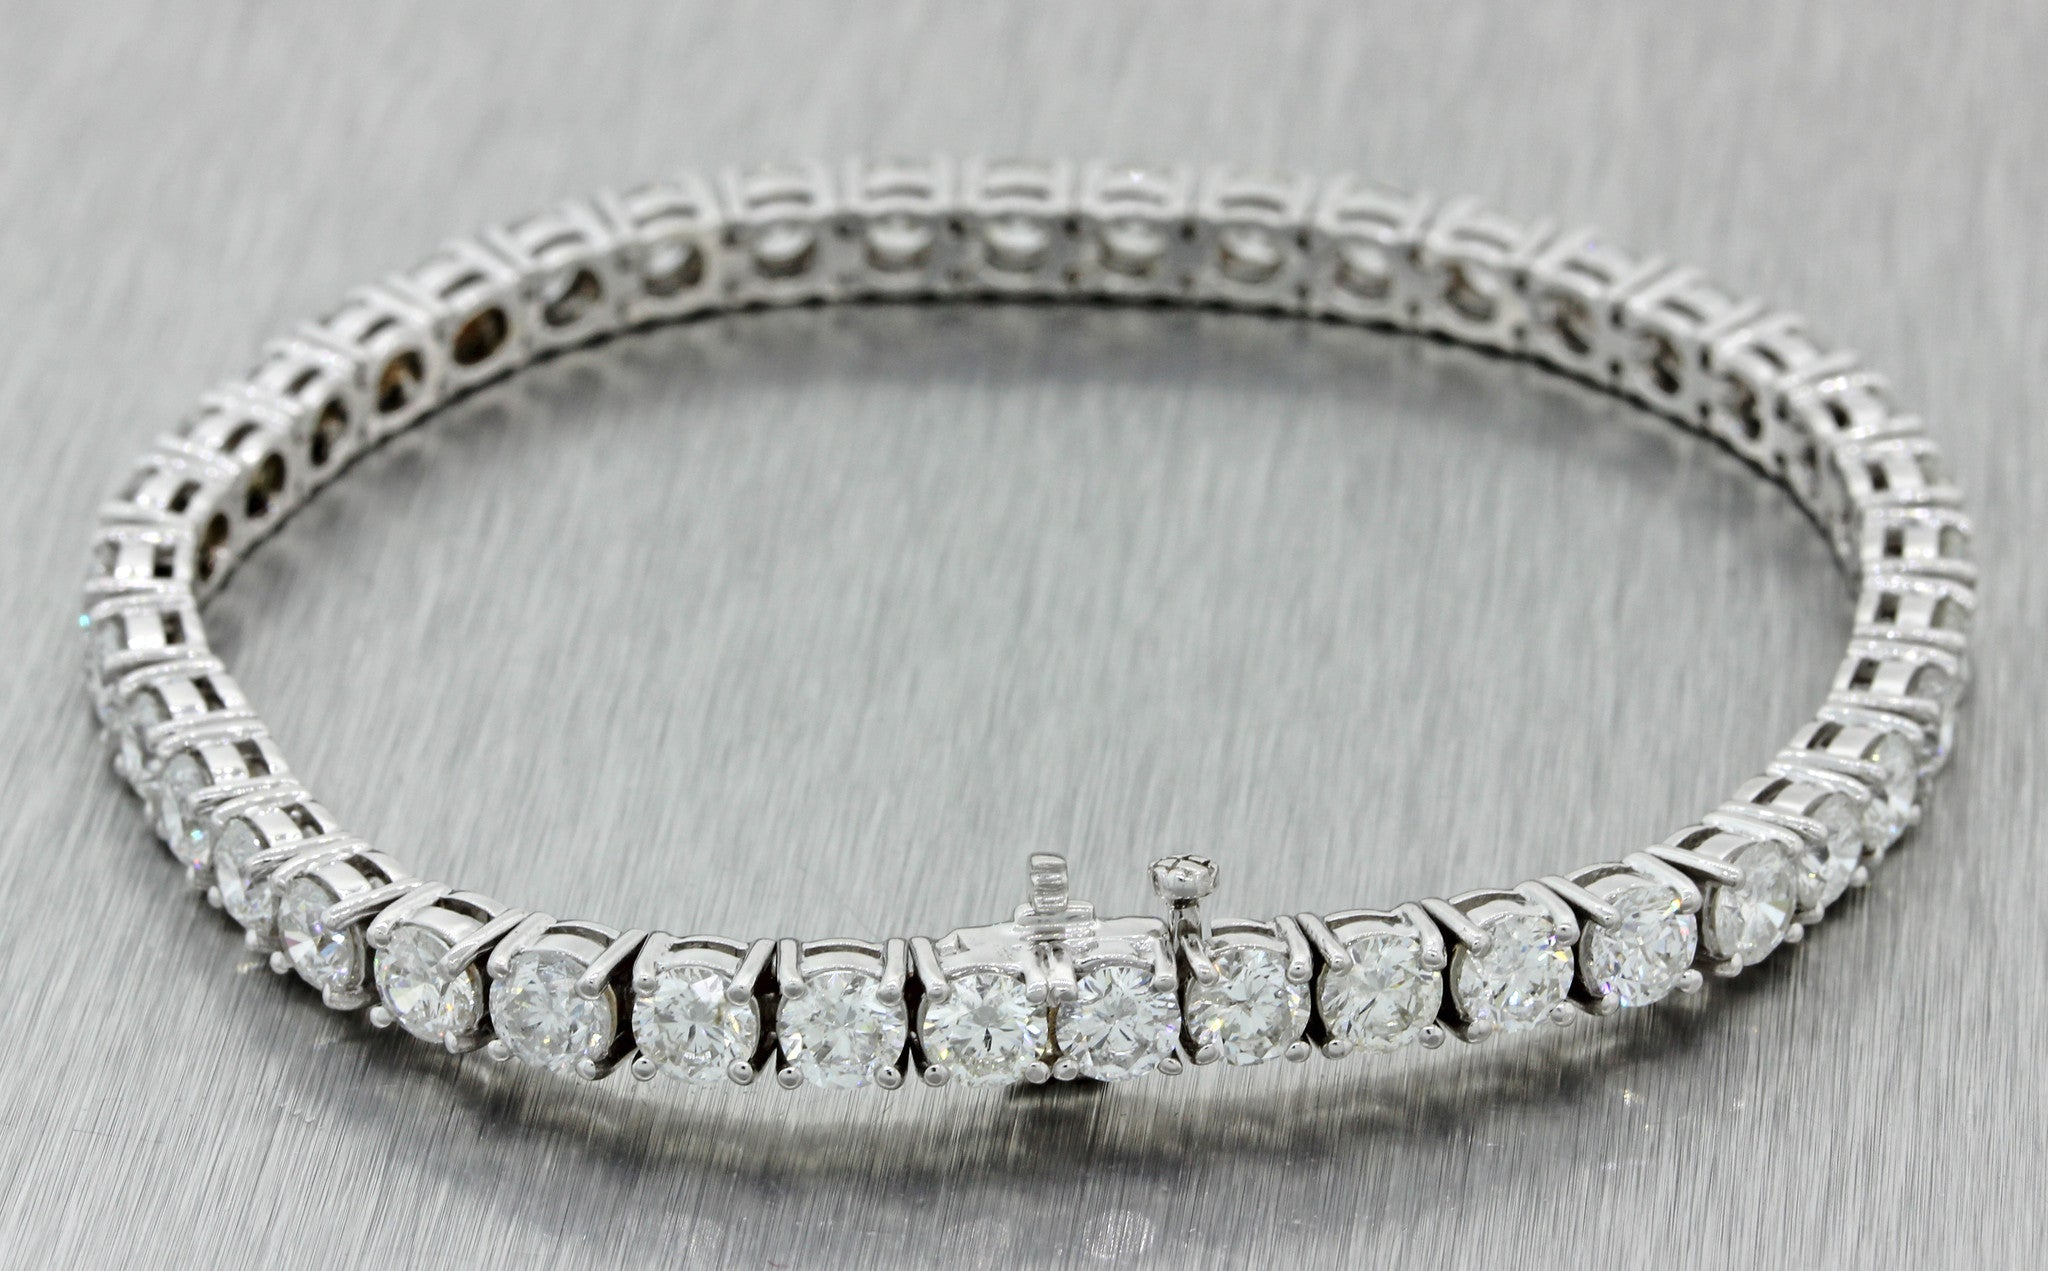 Vintage Estate 14k Solid White Gold 11.68ctw Diamond 5mm Tennis Bracelet 17.8g